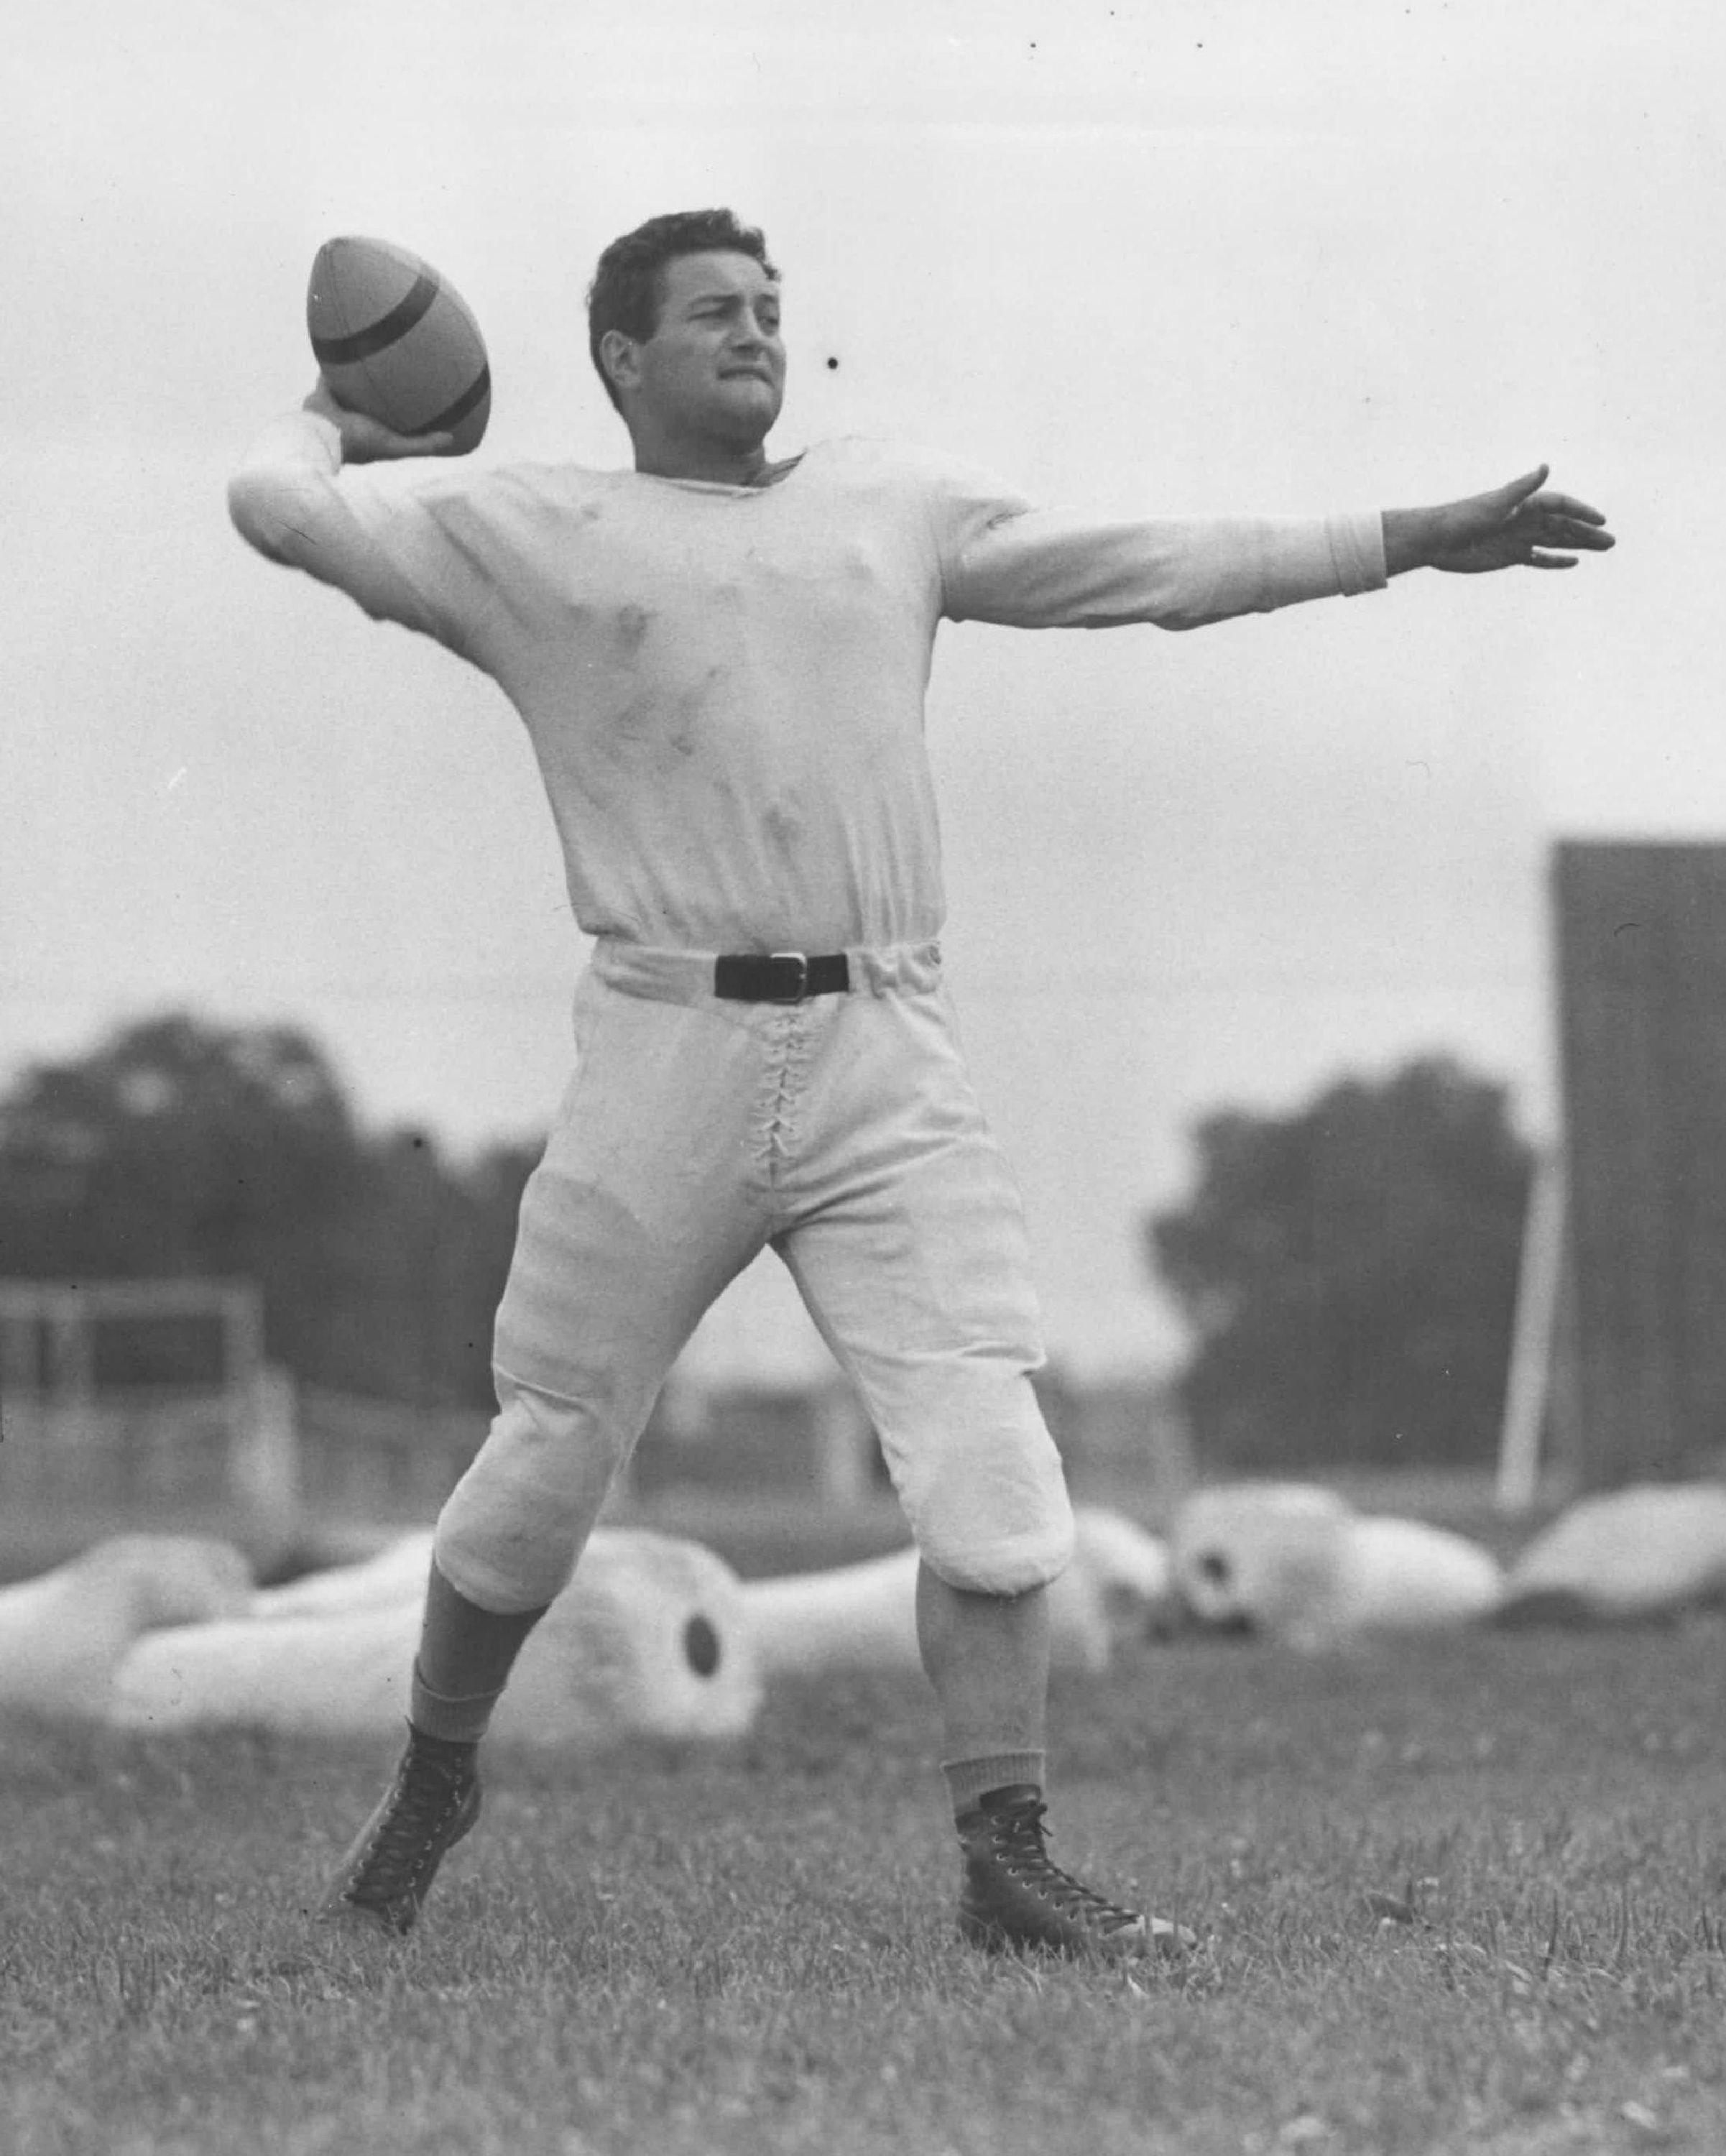 It's not good when photos of the last great quarterback in team history are in black and white. Sid Luckman retired as a Bear in 1950.